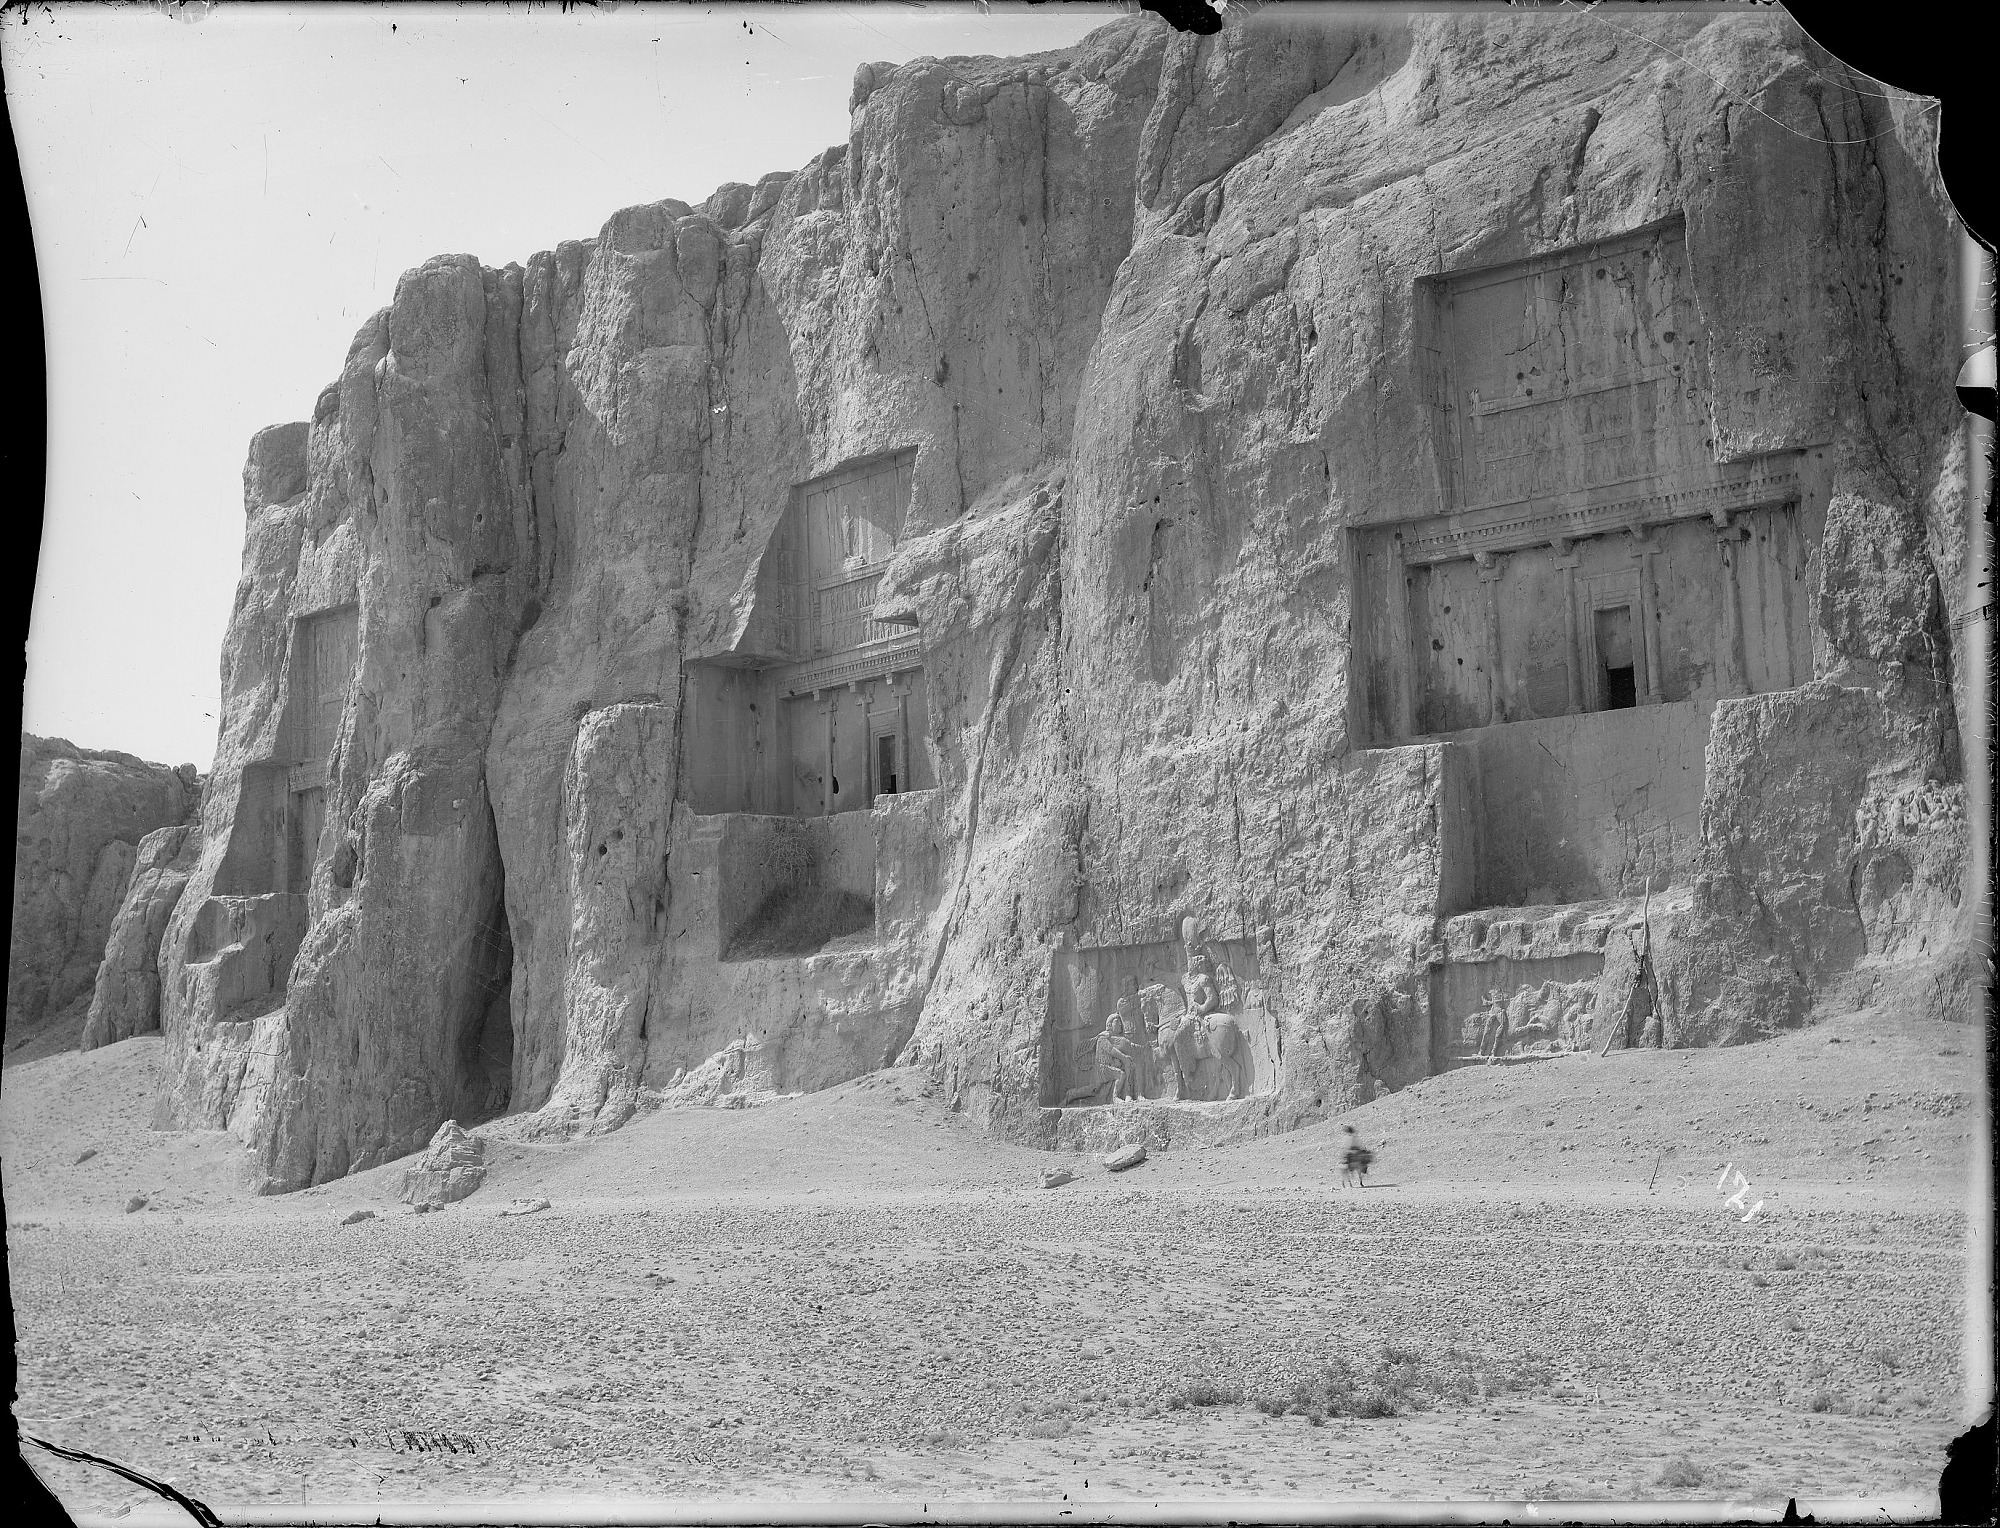 images for Naqsh-i Rustam: Sacred Precinct with Achaemenid Tombs and Sasanian Rock Reliefs Carved into the Husain Kuh Cliff graphic